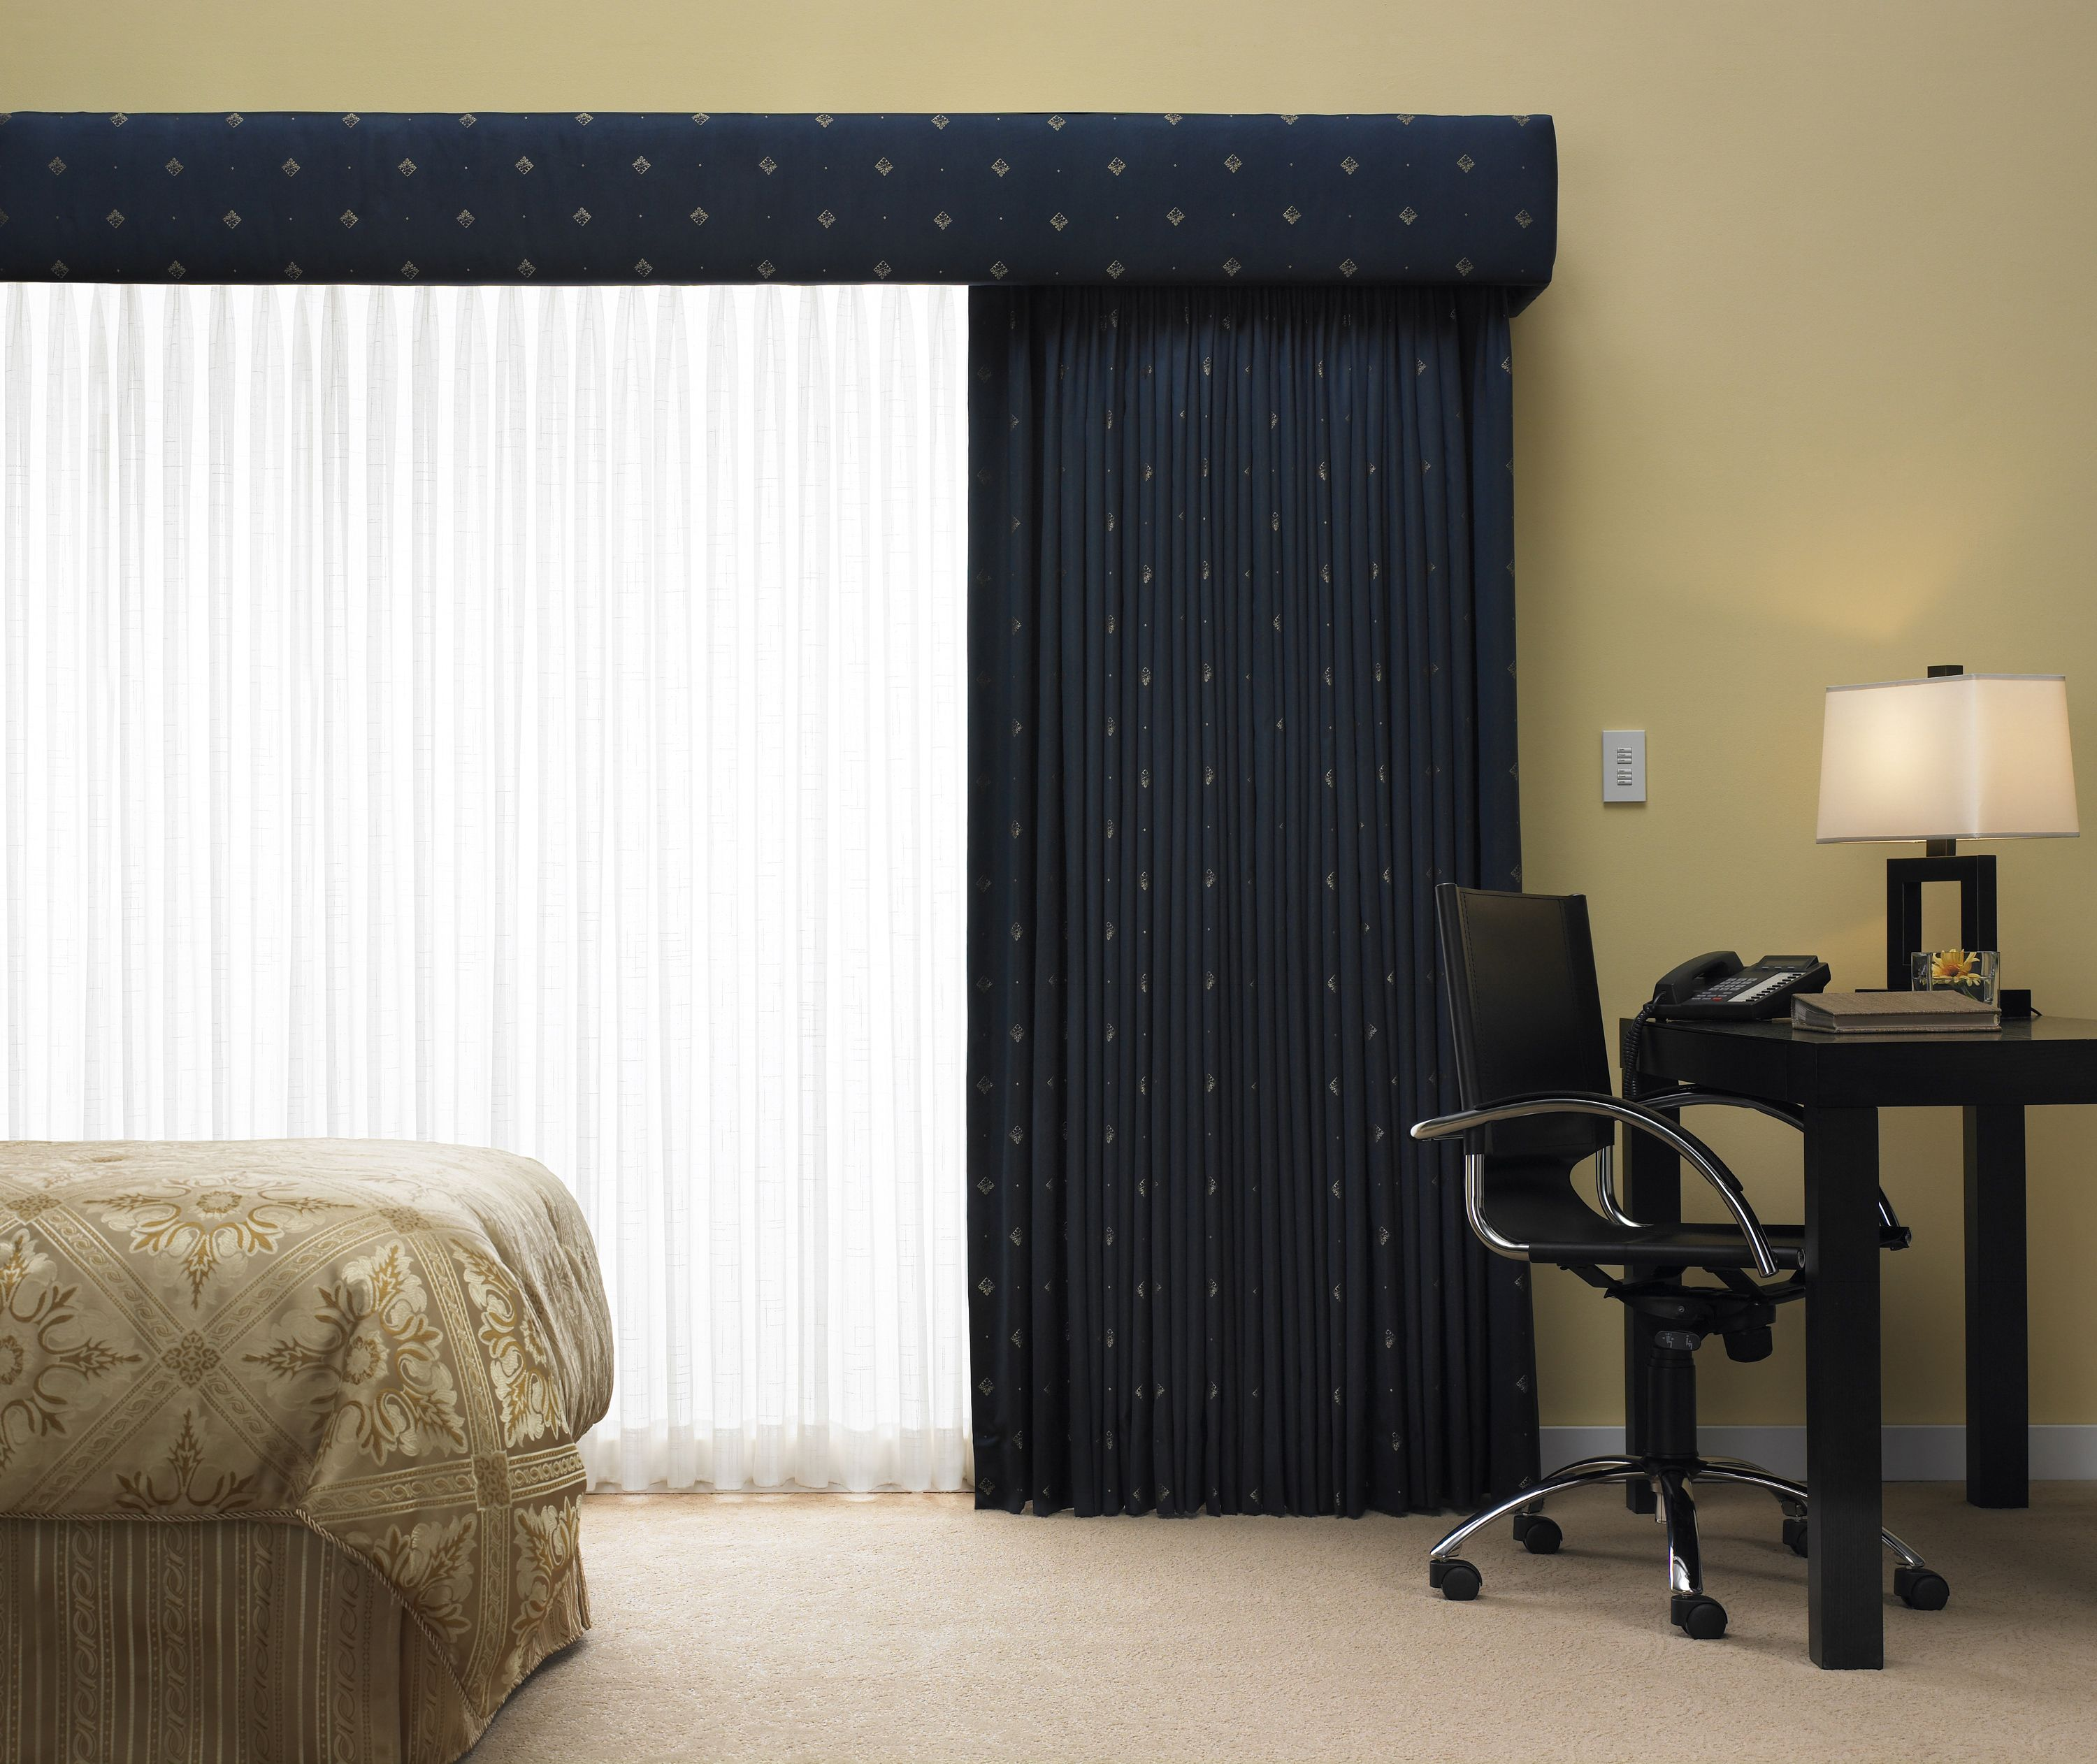 Kirbe Sheer Curtains Amp Blackout Draperies With